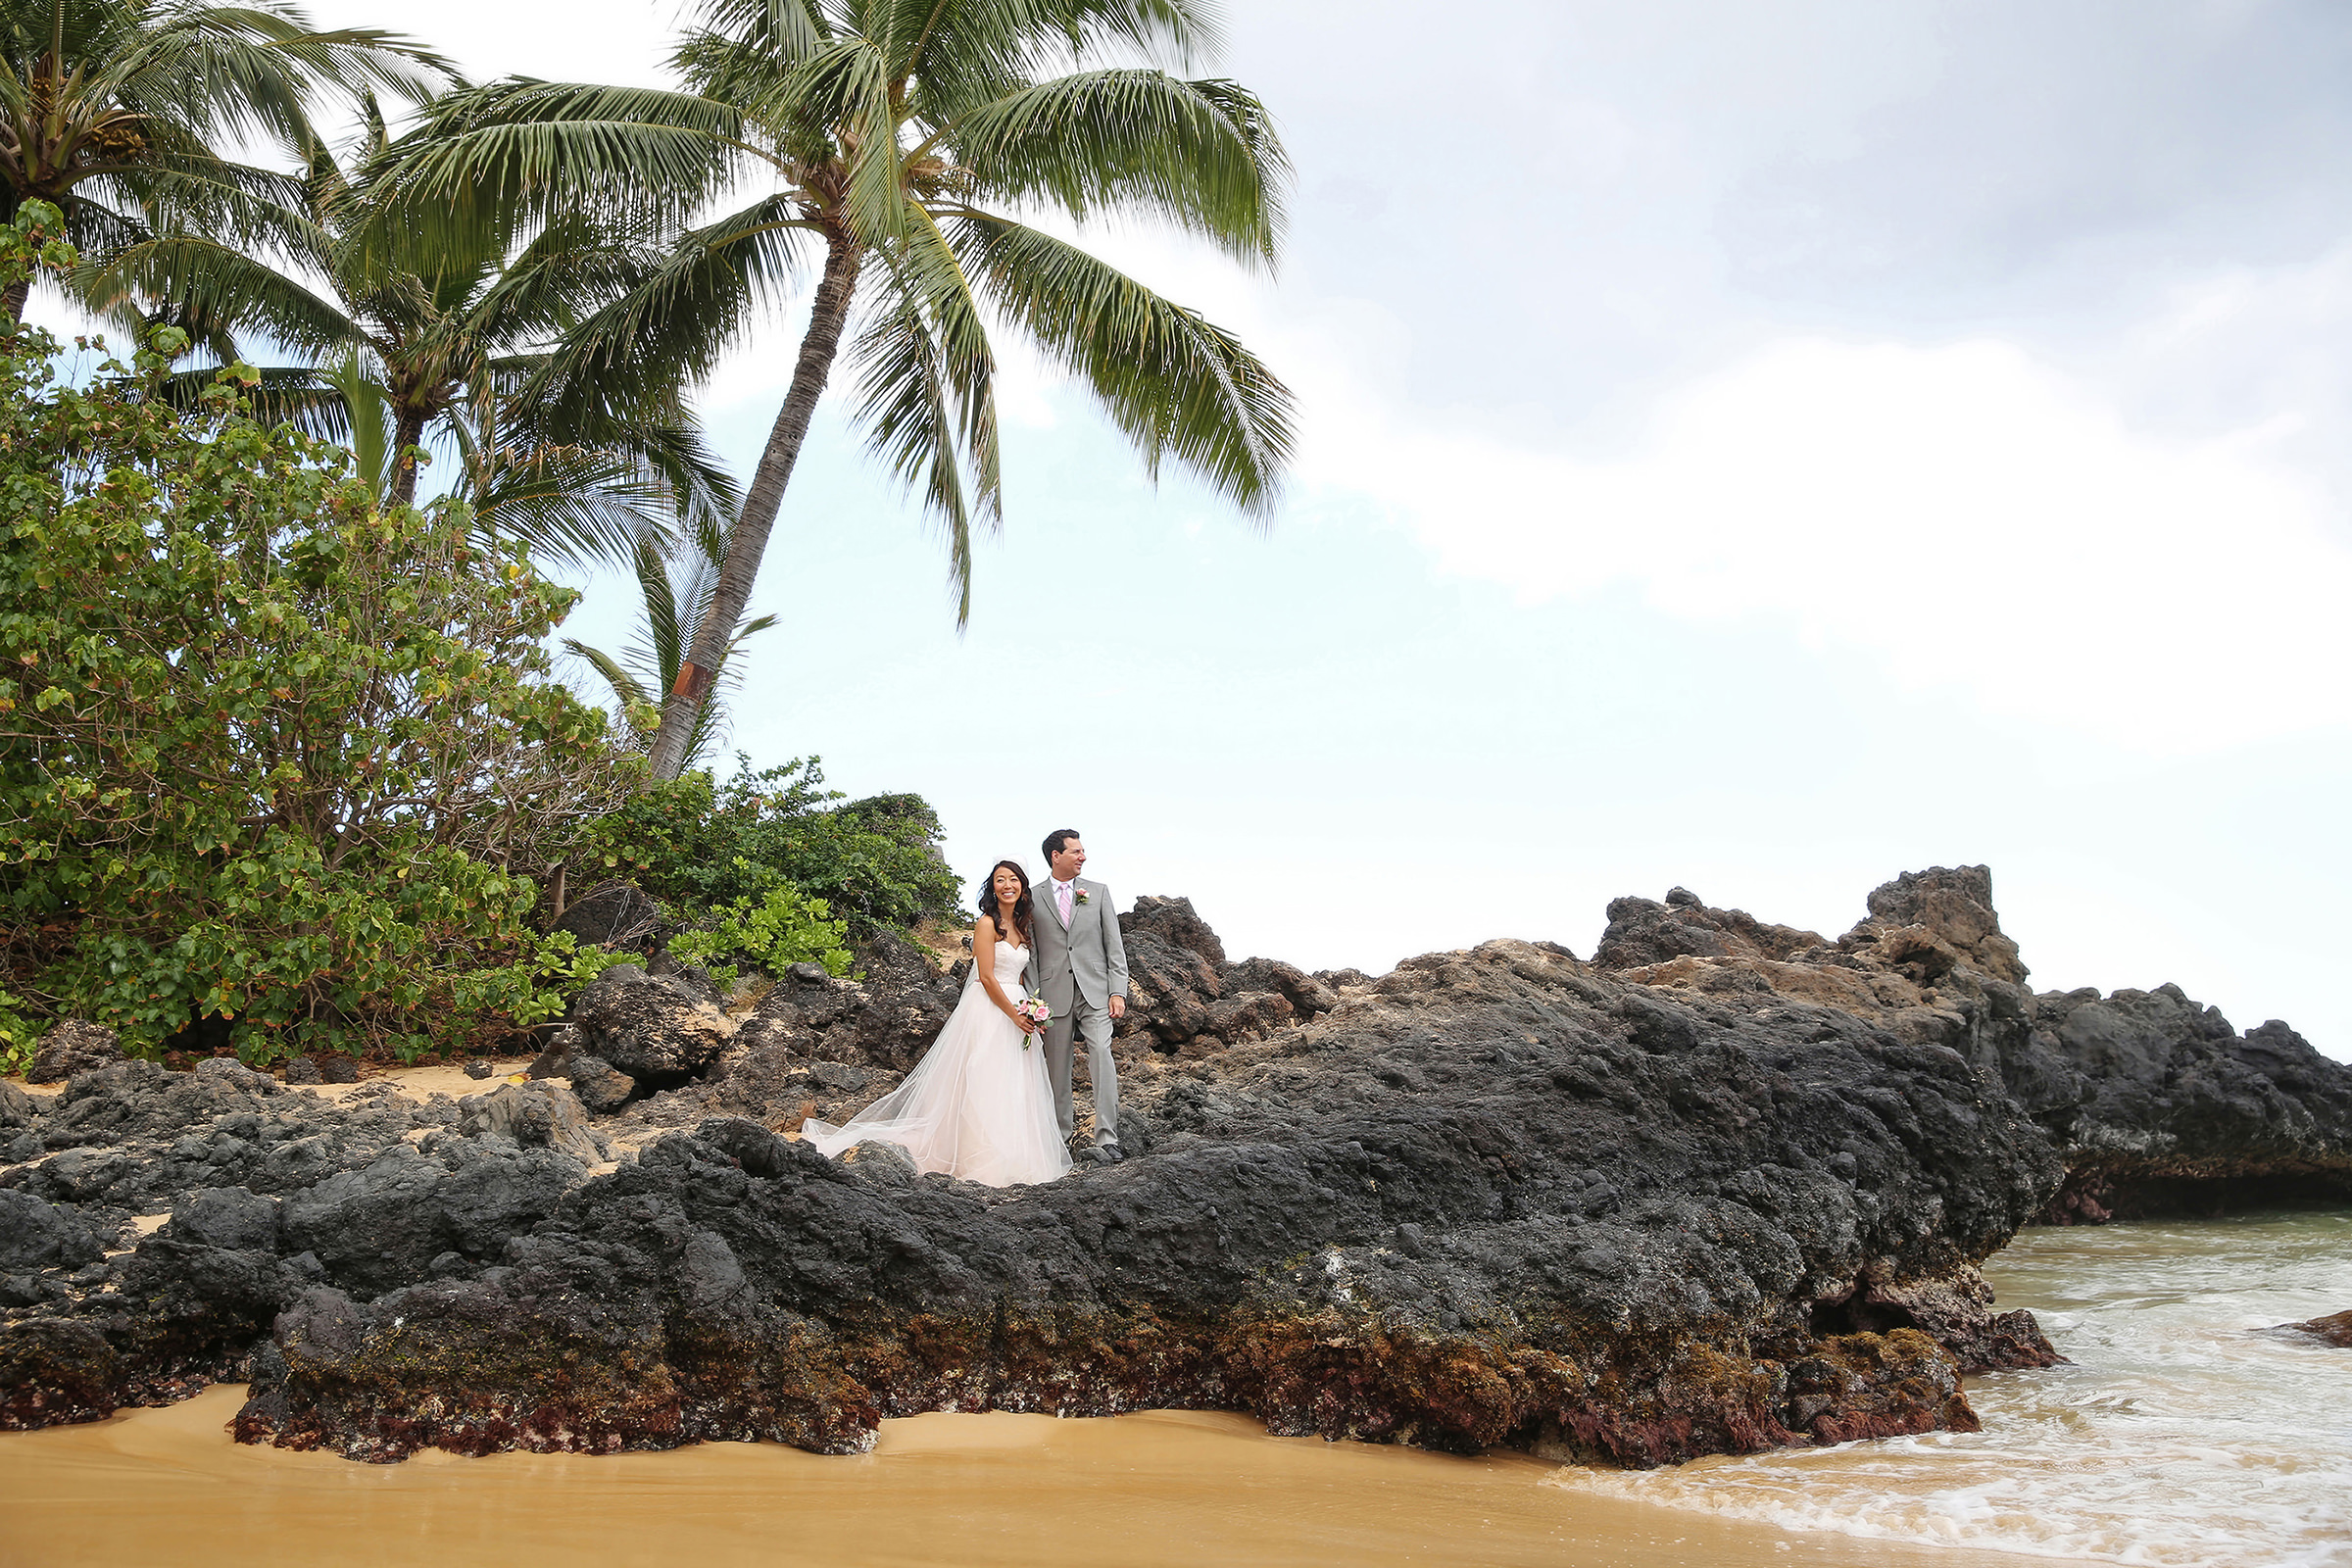 Couple on lava rock against palms and surf - photo by Kenny Kim Photography